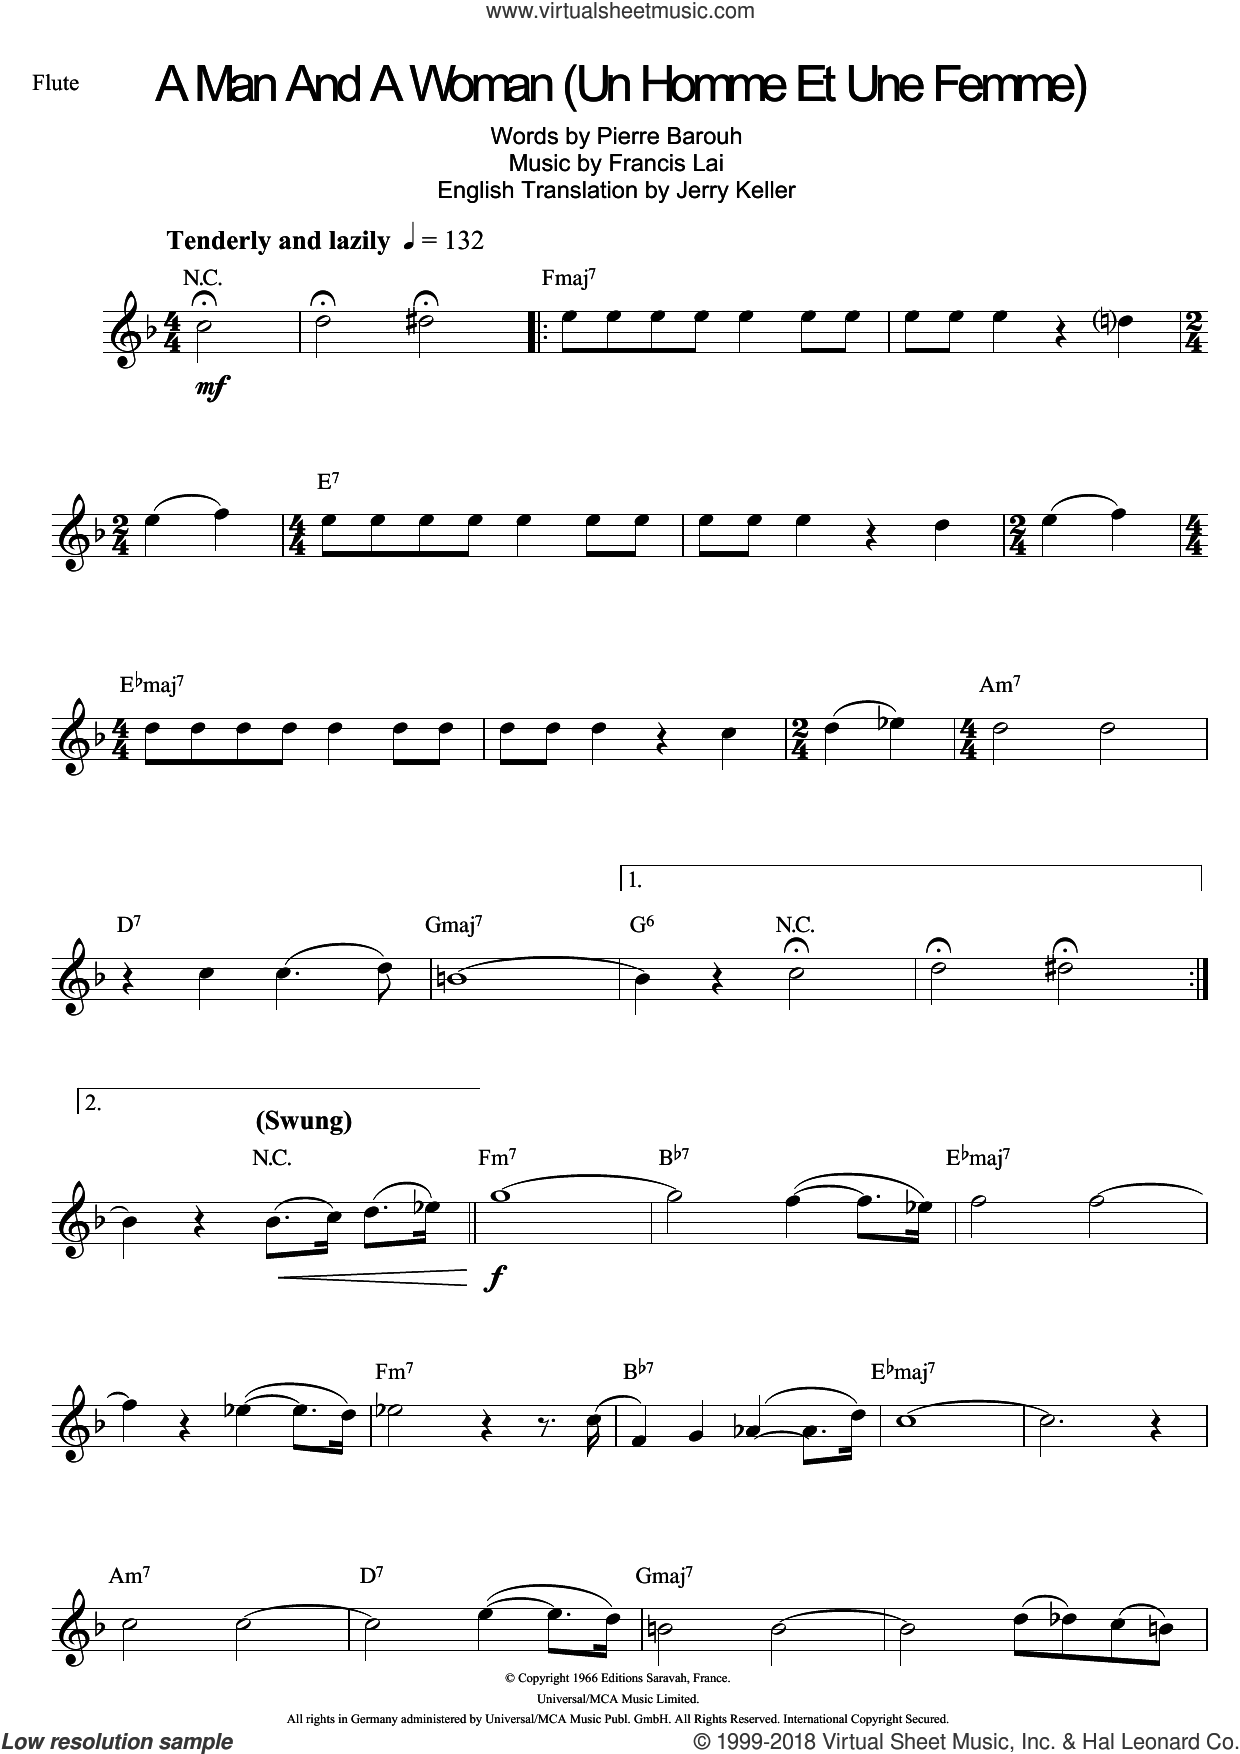 A Man And A Woman (Un Homme Et Une Femme) sheet music for flute solo by Francis Lai and Pierre Barouh, intermediate skill level